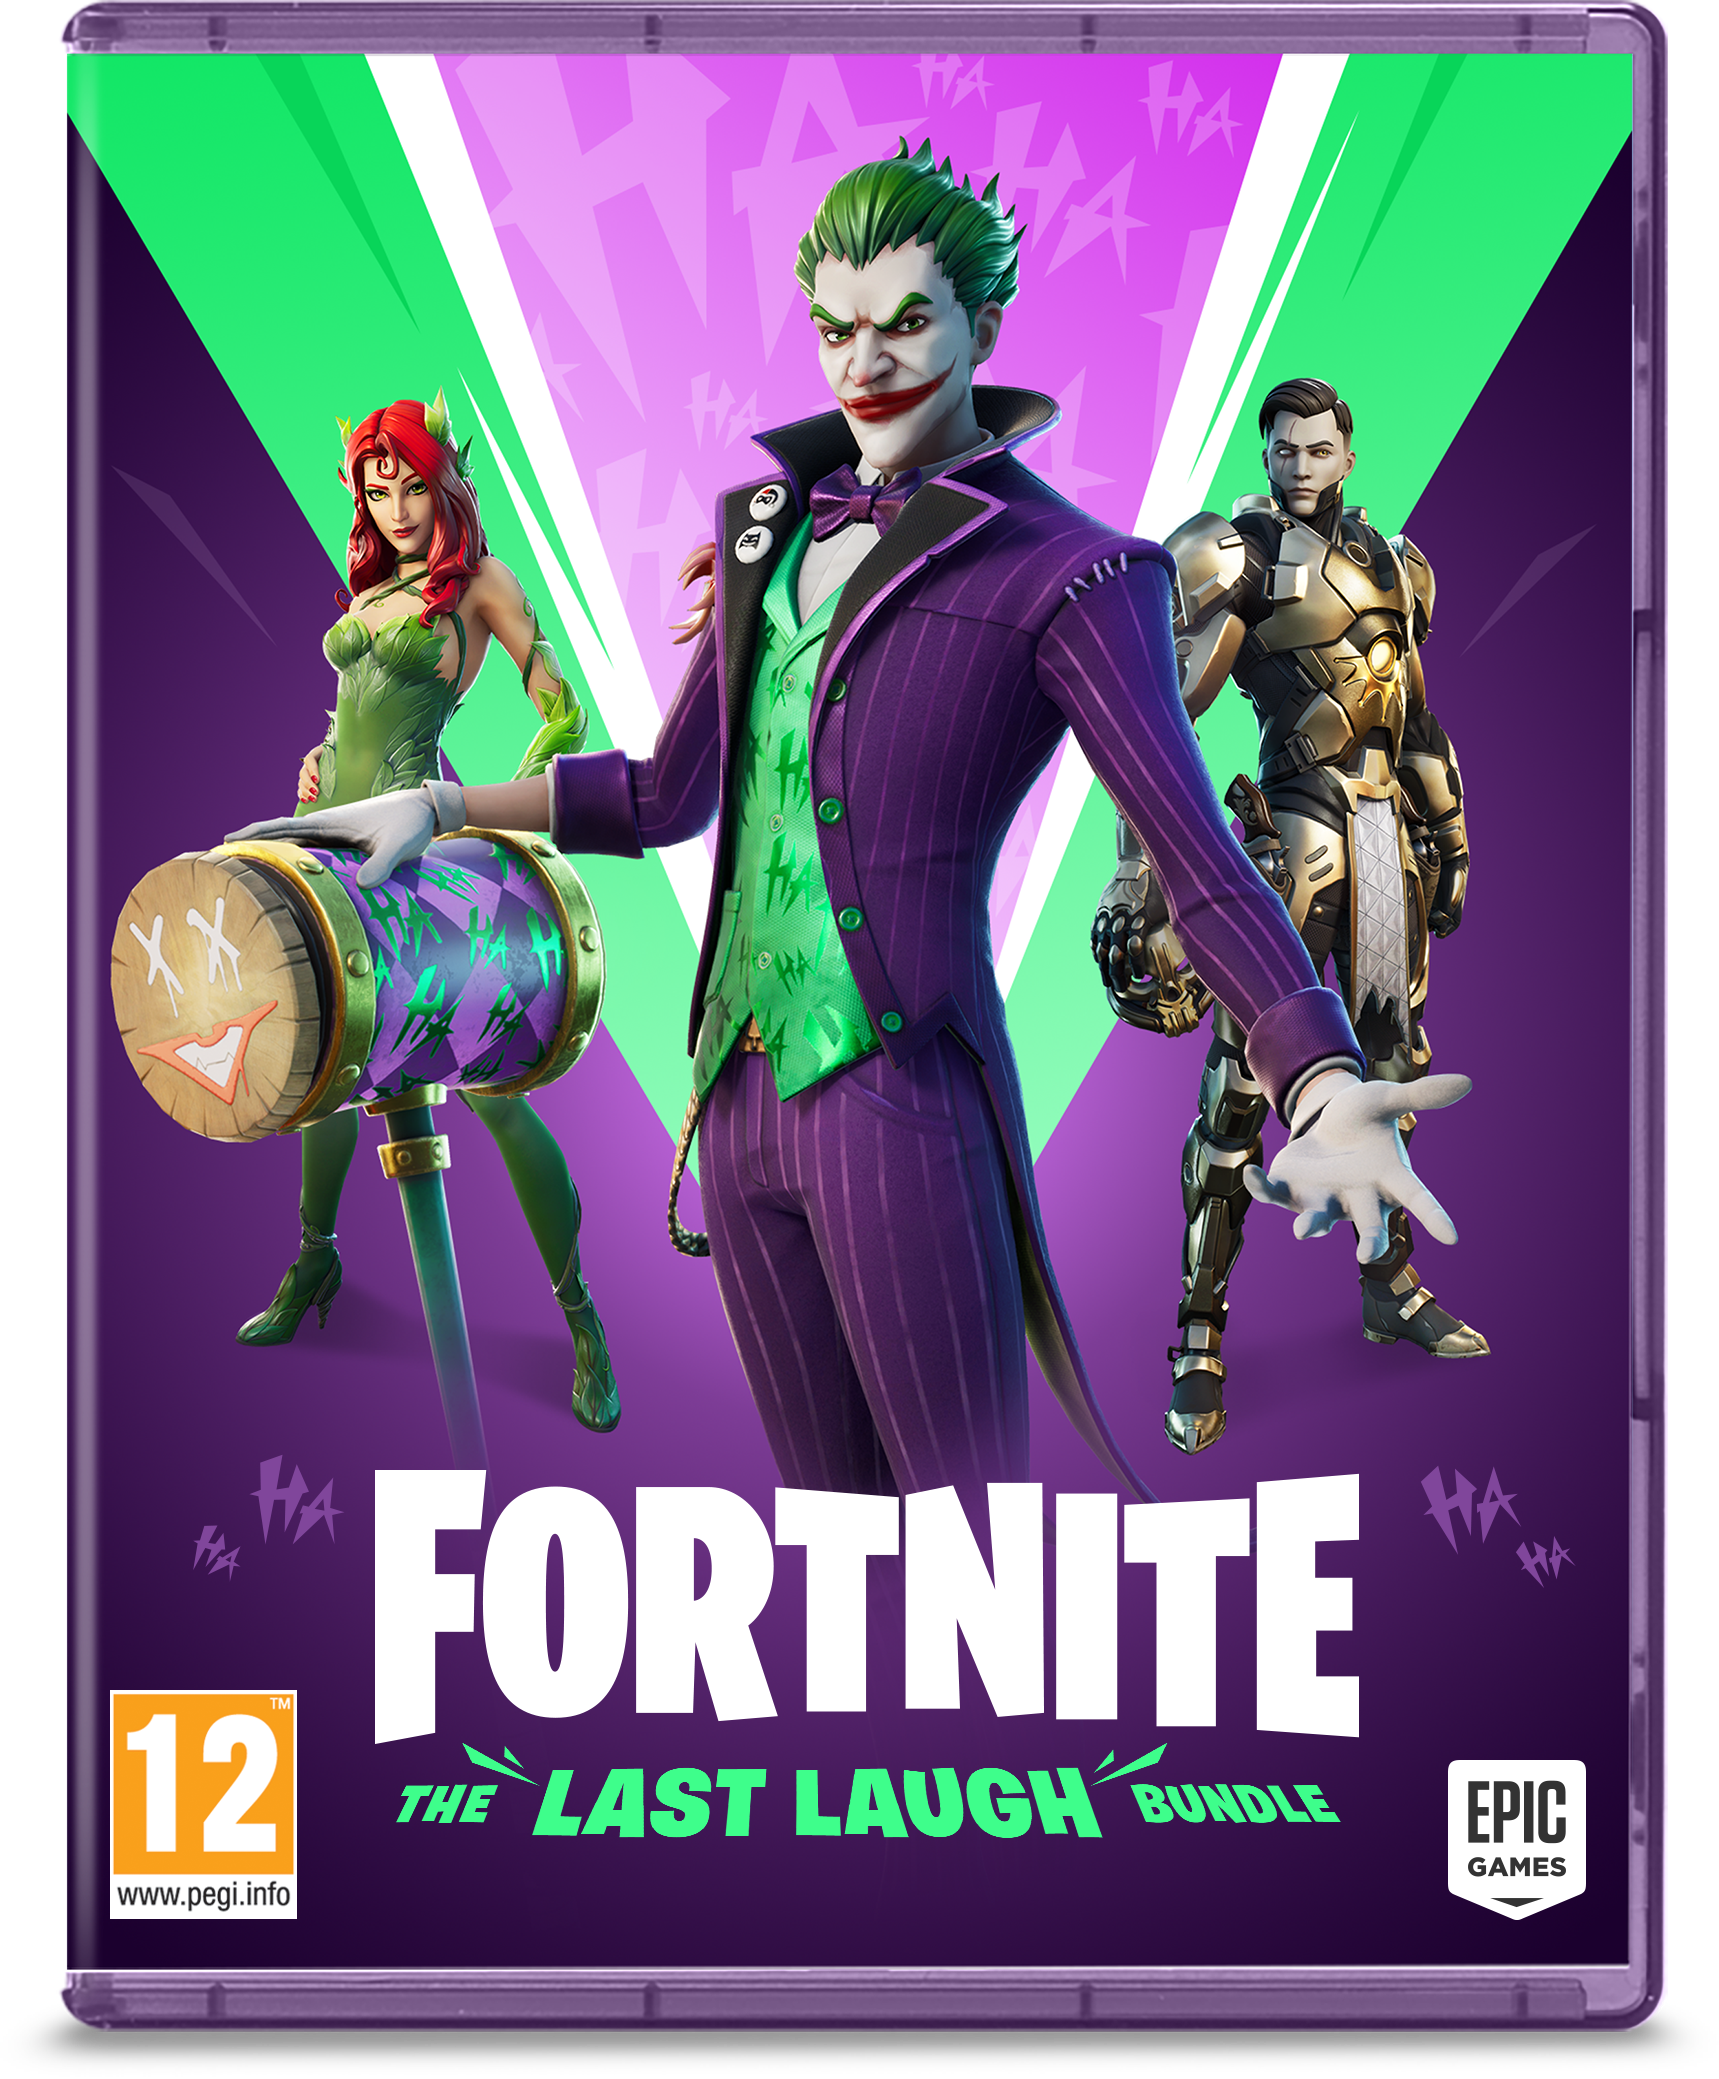 Fortnite: The Last Laugh Bundle promo pack